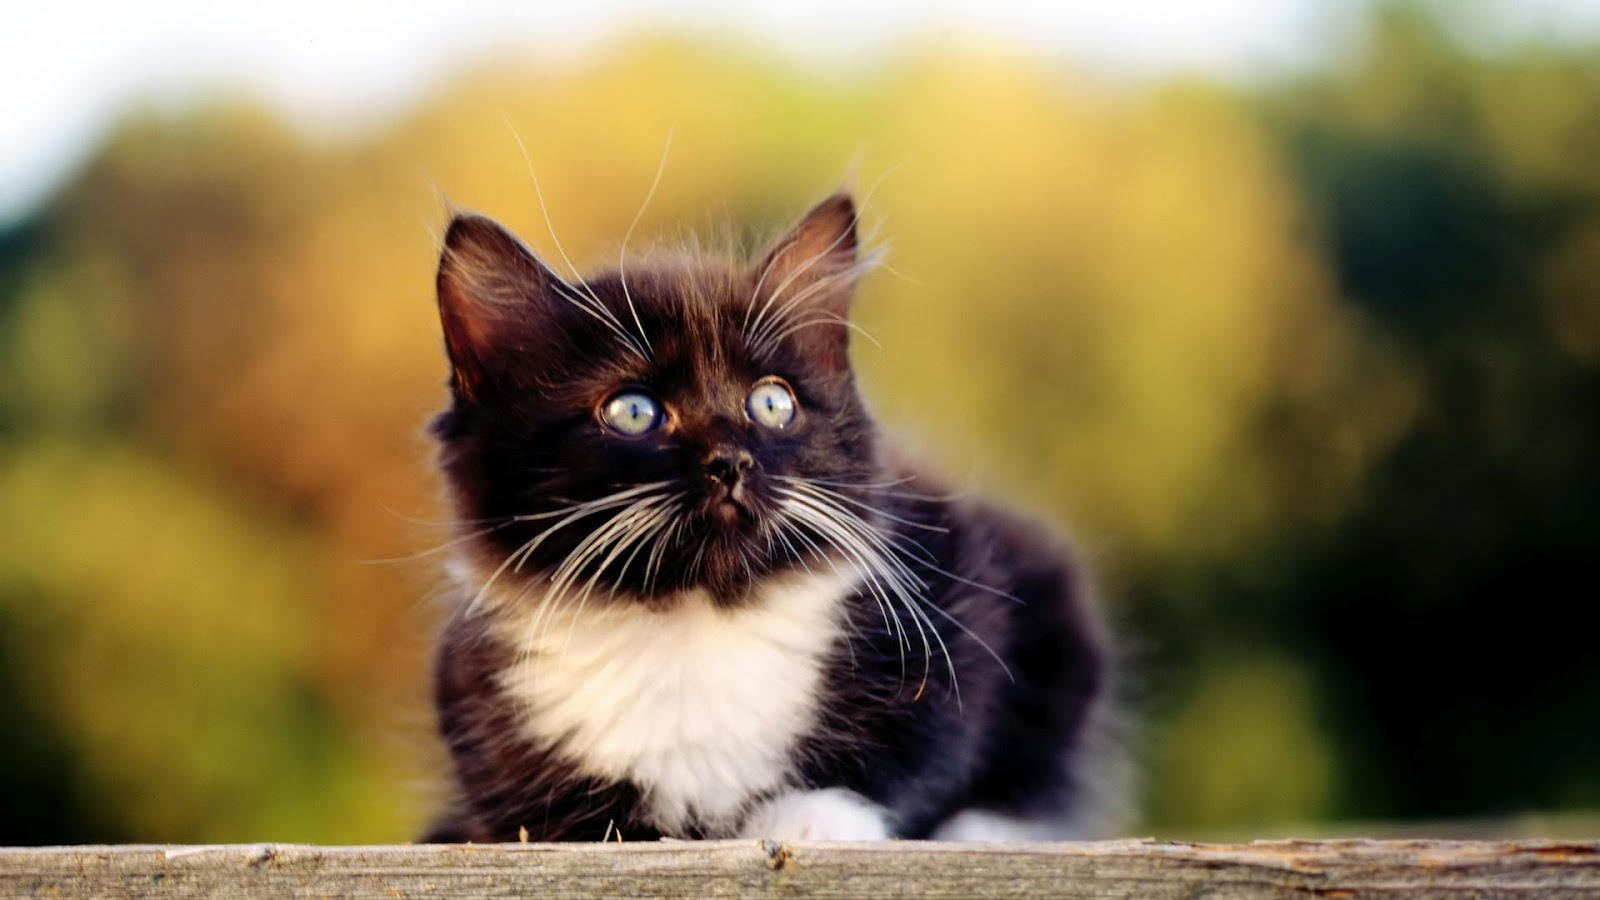 Worlds all amazing things picturesimages and wallpapers cute cute kitten wallpapers altavistaventures Image collections